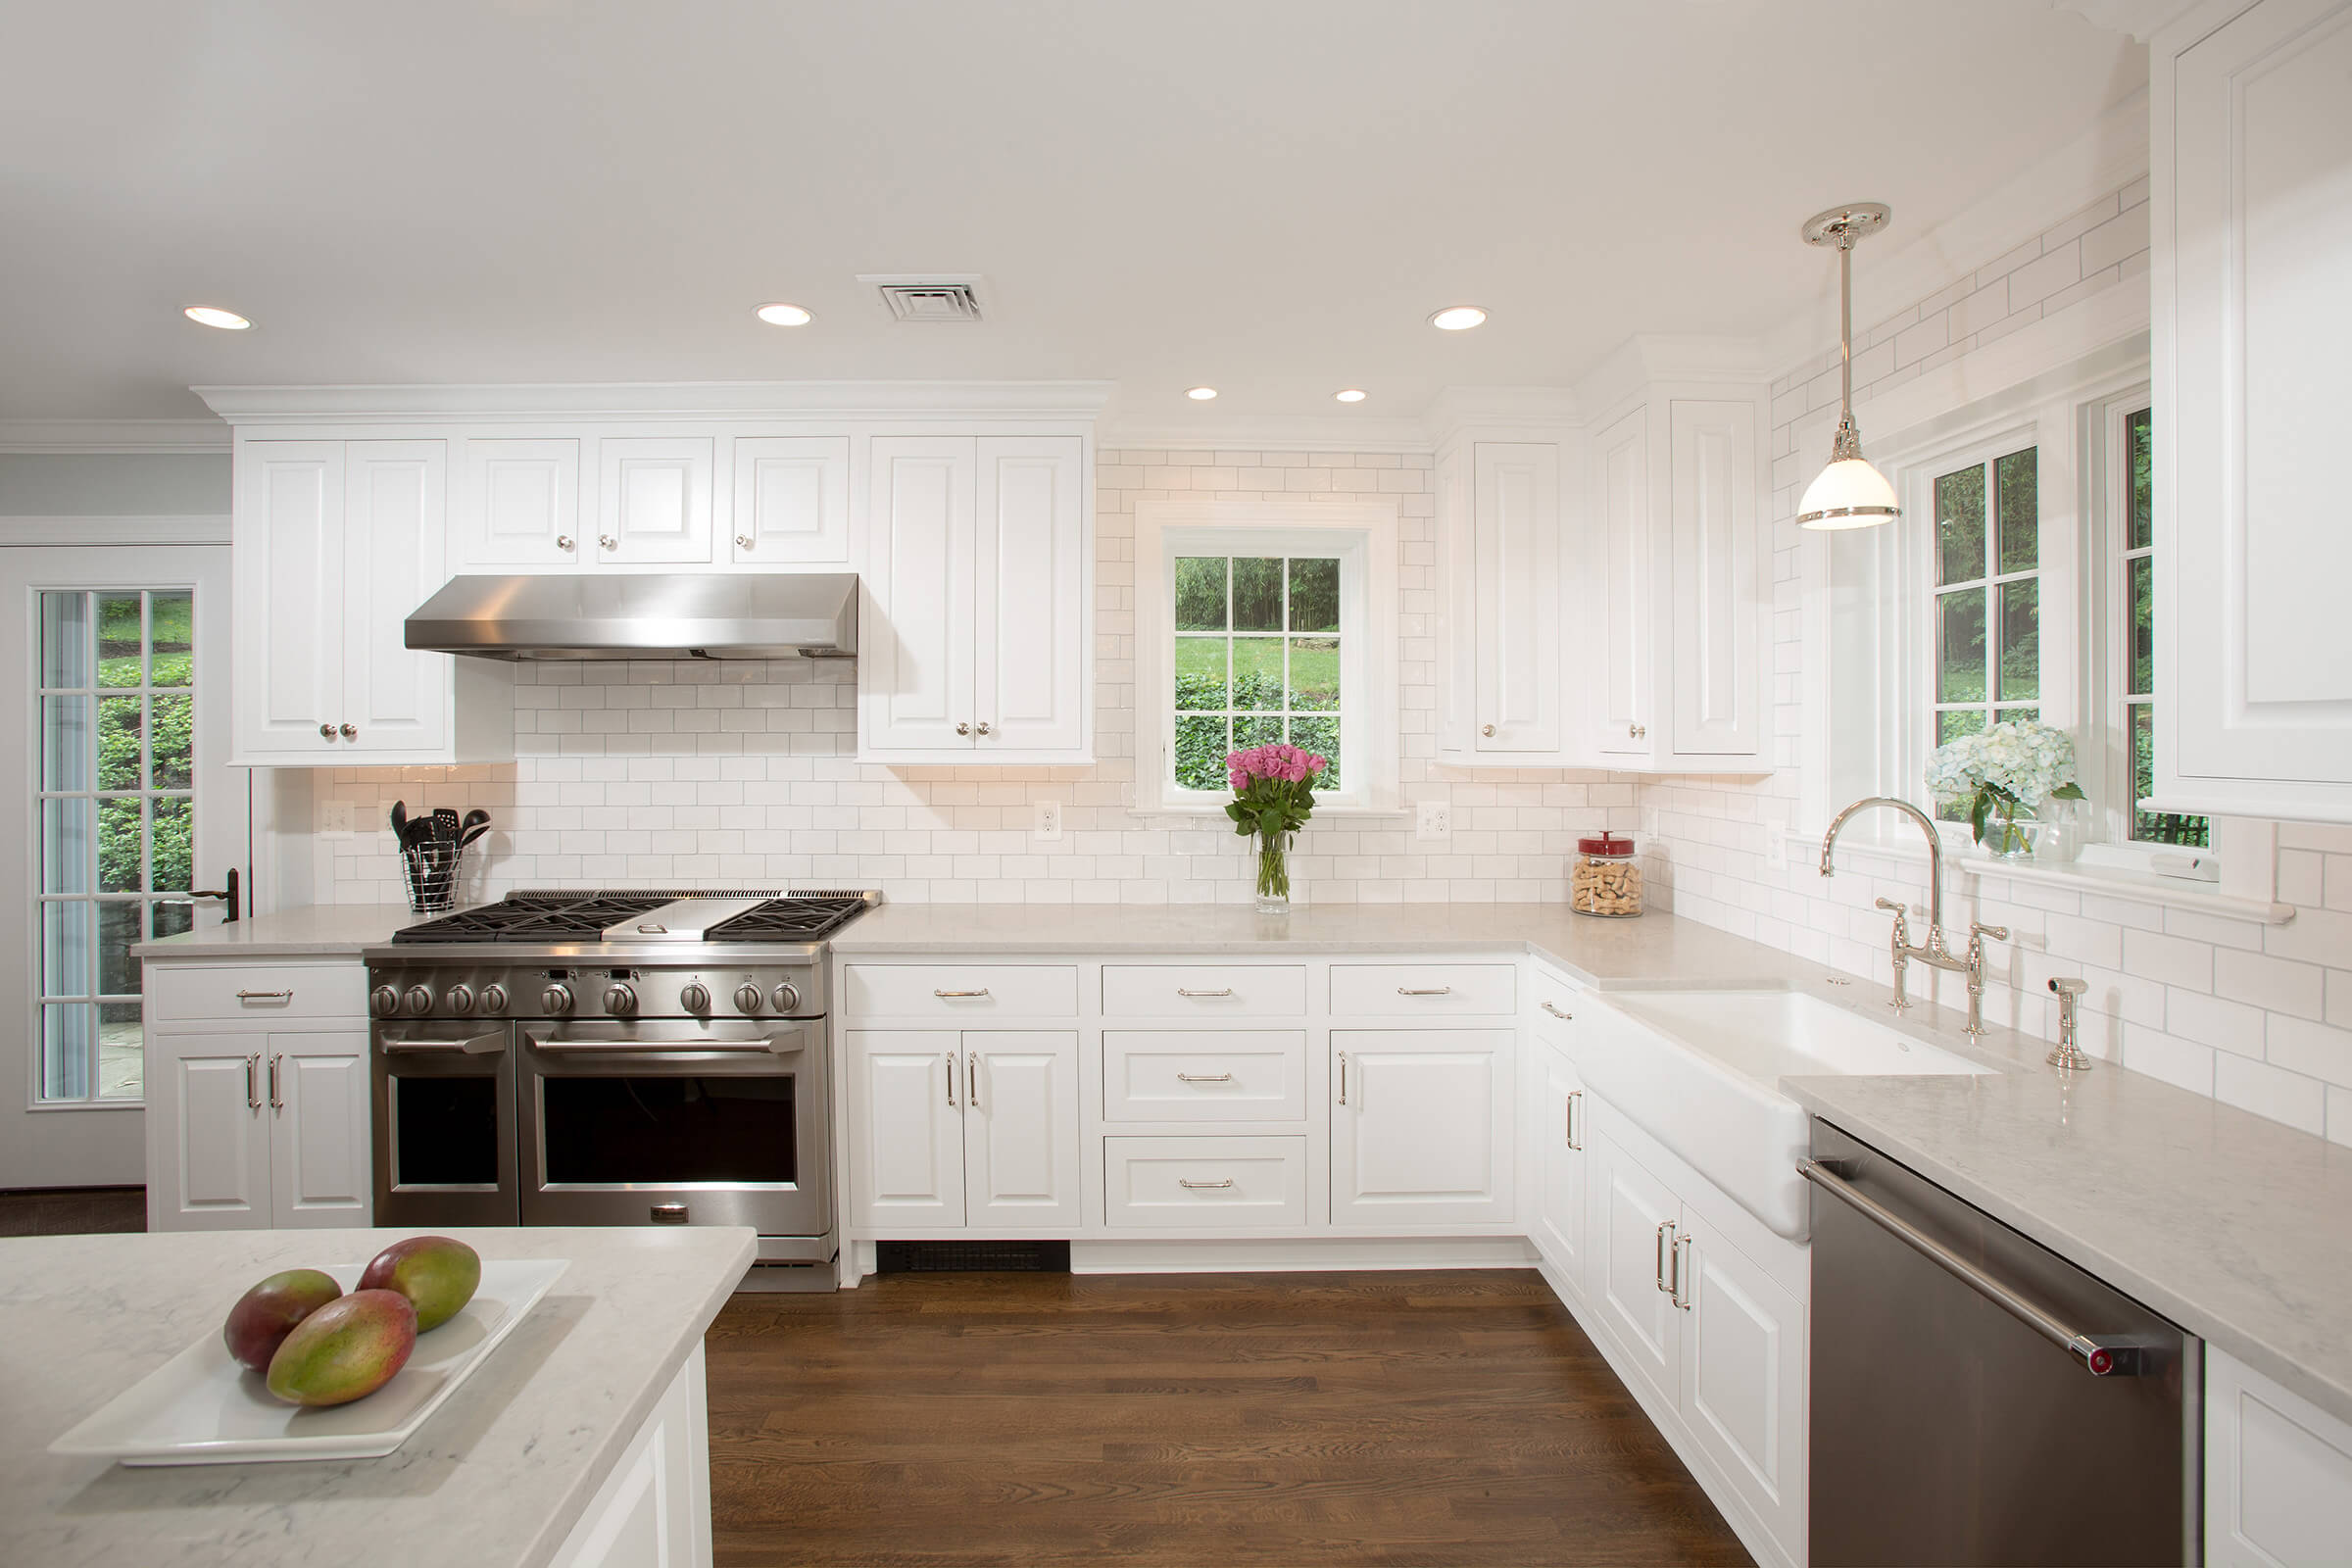 White Kitchen Cabinets With Light Green Doors